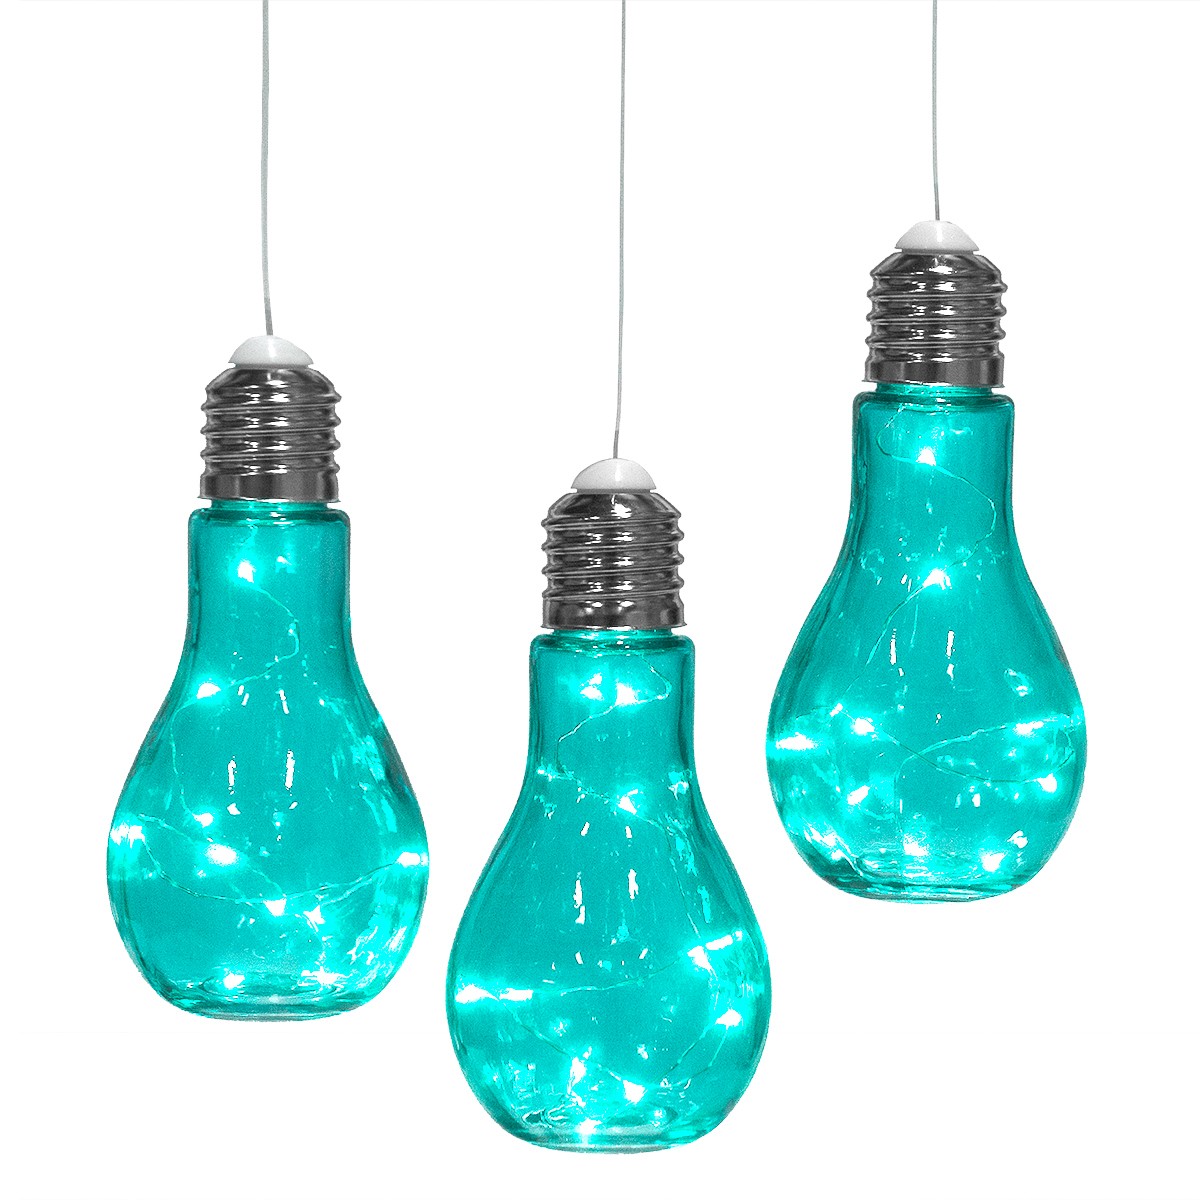 Set of 3 Hanging Bulb-Shaped Glass Lanterns Decorative Outdoor Lights Pendant Lamps Patio Party Lighting Weddings Backyard